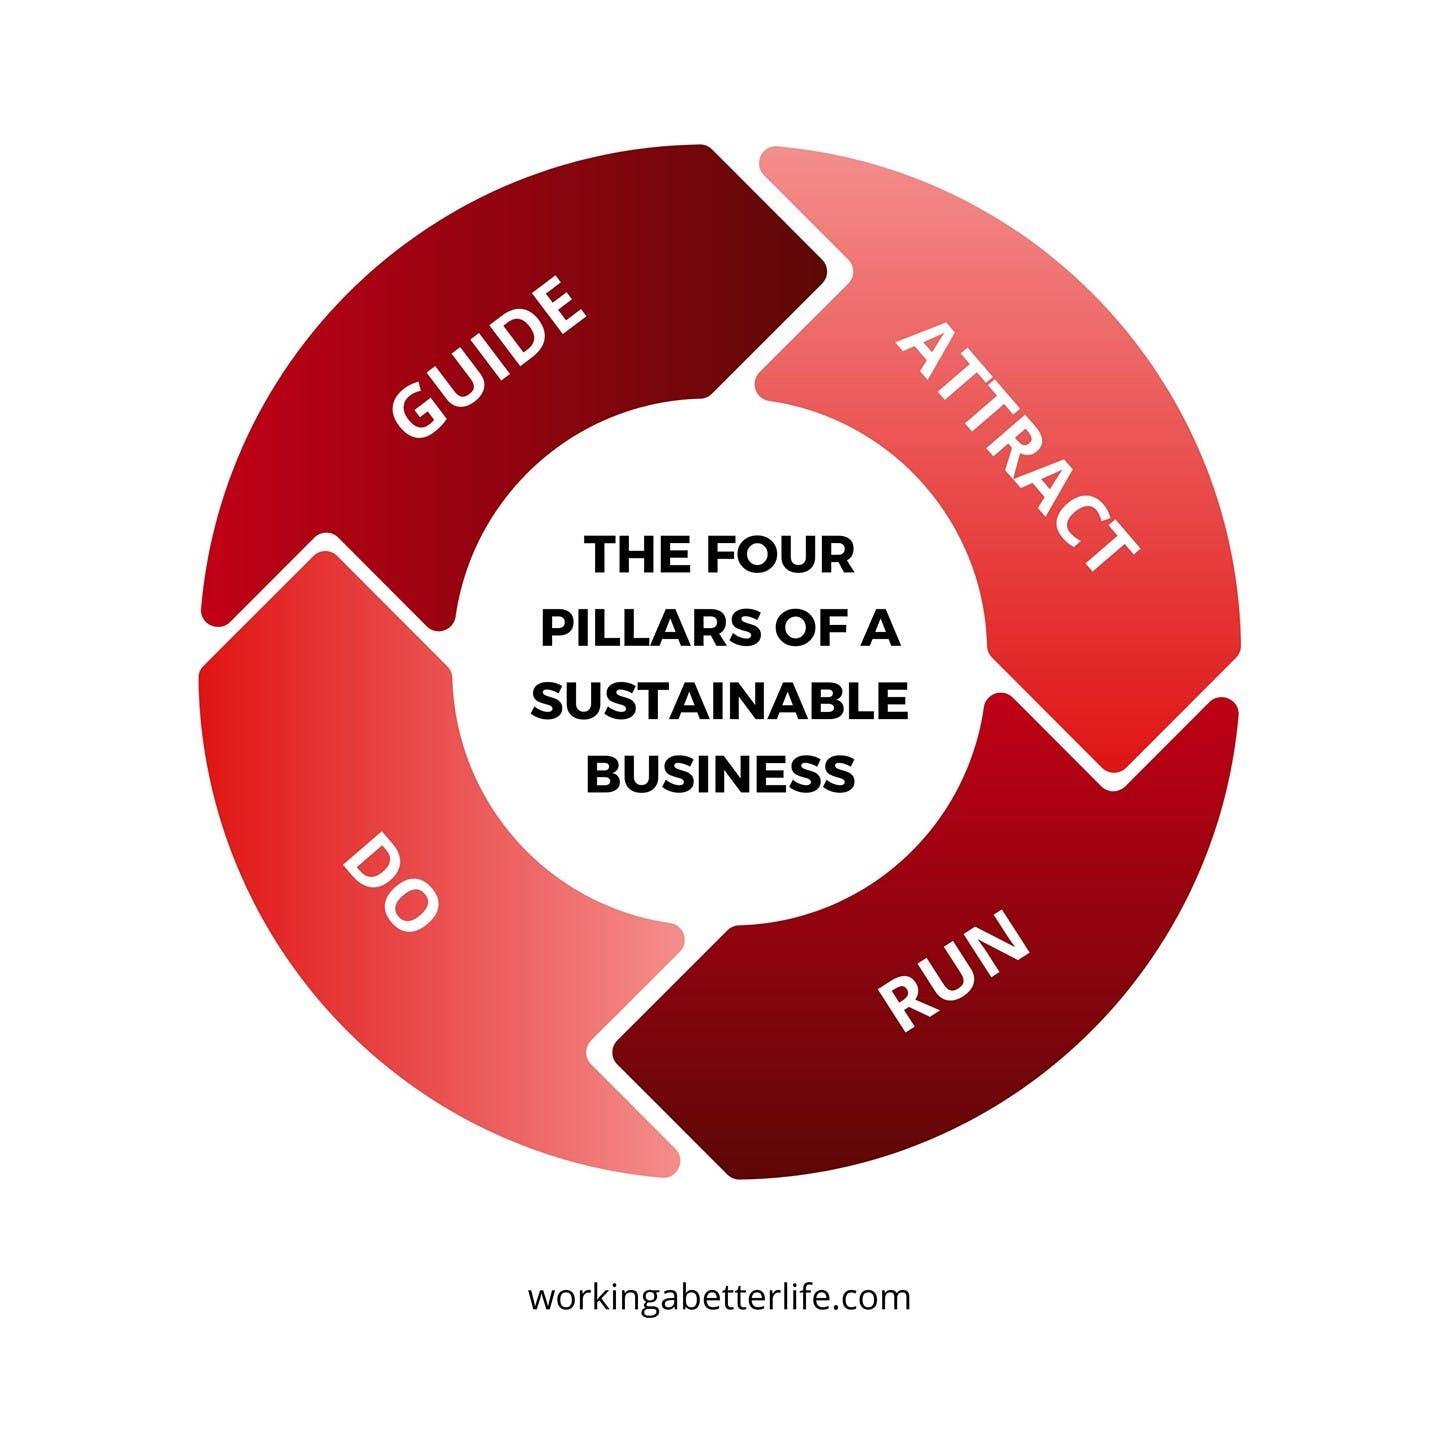 There are four pillars to running a sustainable and profitable business:    Guide The Business    Attract The Business    Run The Business    Do The Business    Most business owners (and yes, if you have a photography business then you are a business owner, even if it is just you) tend to focus on attracting the business and doing the business at the expense of the other two. This can be a costly mistake and lead to the business becoming your boss, instead of a business that you love and enjoy, a business that serves you.    𝗚𝘂𝗶𝗱𝗲 𝗧𝗵𝗲 𝗕𝘂𝘀𝗶𝗻𝗲𝘀𝘀     This is an underestimated part of running a business, however, it is key. Don't overcomplicate this. I show my clients how to use a simple one-page document called the Business GPS that they can glance at and review on a regular basis. It's an effective guidance system to keep your business on track and stop you from getting distracted from achieving your goals and dreams.    𝗔𝘁𝘁𝗿𝗮𝗰𝘁 𝘁𝗵𝗲 𝗕𝘂𝘀𝗶𝗻𝗲𝘀𝘀    All things marketing and sales. When it comes to attracting the business many creatives skip the foundational aspects of deeply understanding their clients and target market.     When you fathom out what drives and motivates your clients to buy your products and services on a deeper intrinsic level (rather than the surface level I want photographs of my dog) then you can create effective messaging, positioning and marketing.    𝗥𝘂𝗻 𝗧𝗵𝗲 𝗕𝘂𝘀𝗶𝗻𝗲𝘀𝘀    Another often neglected part of business.    This is all about your data/numbers, finances and team (even if you think of yourself as a team of 1). However, if you use any suppliers or tools from other companies then you have a team...    Without knowing your data you can't make good decisions. Without measuring your Objectives and Key Results (OKRs) you make decision making guess.    There is no need to overcomplicate this. Keep it simple and track the essentials.     𝗗𝗼 𝗧𝗵𝗲 𝗕𝘂𝘀𝗶𝗻𝗲𝘀𝘀    This is delivering the business, doing the work of your business. The more that you can systemise this and create processes, the more consistent your client experience will be, and the easier your life will be.